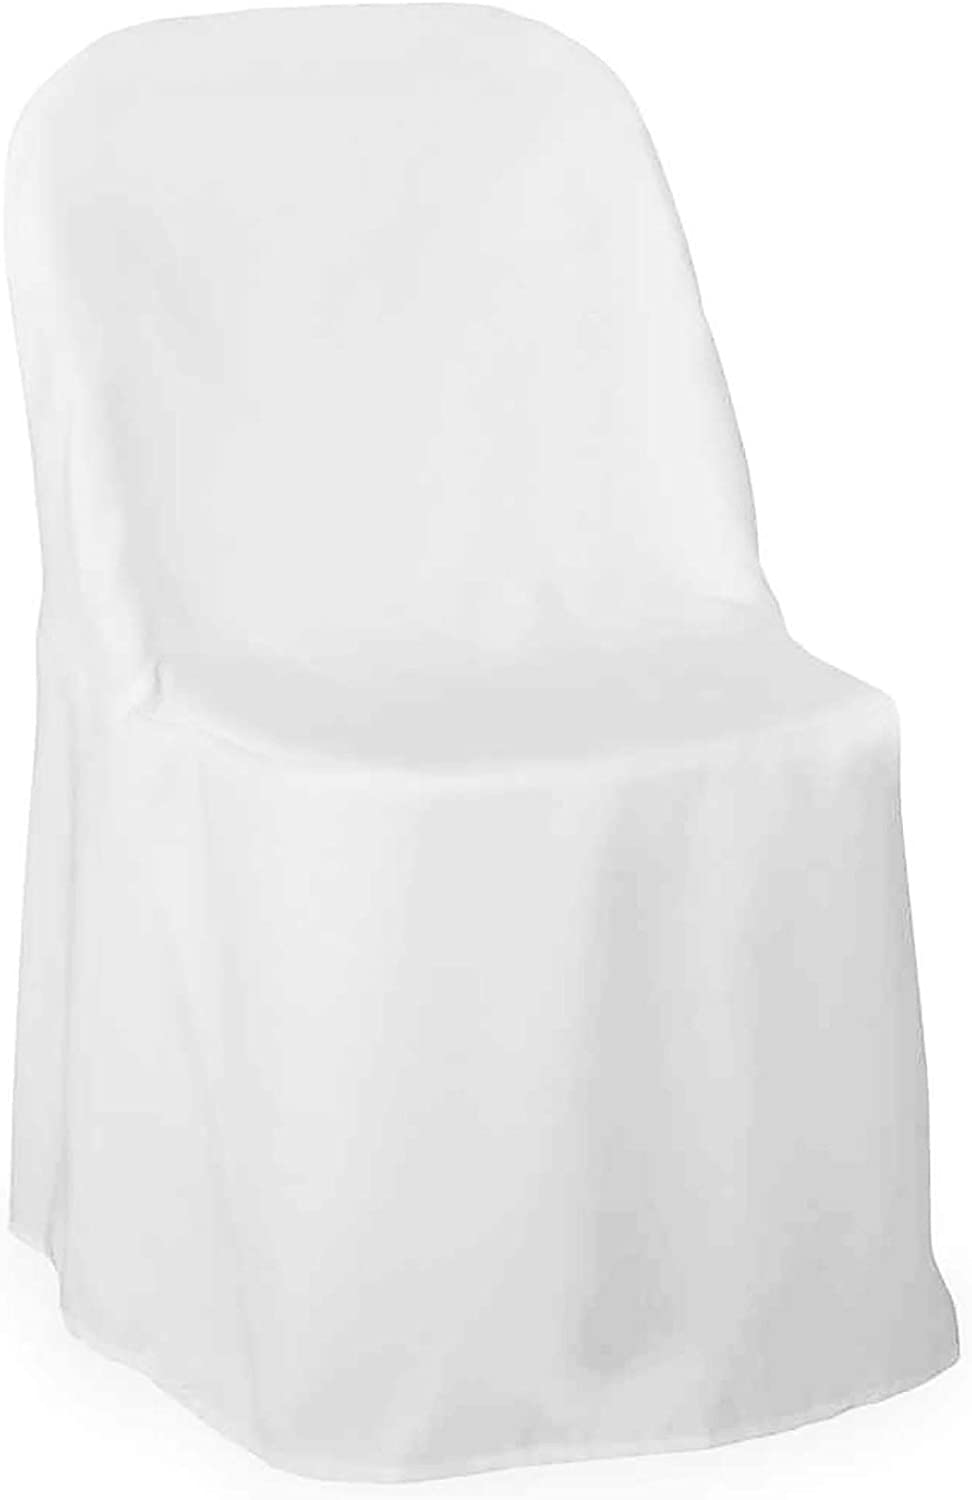 Lann's Linens - 10 Elegant Wedding/Party Folding Chair Covers - Polyester Cloth - White: Home & Kitchen